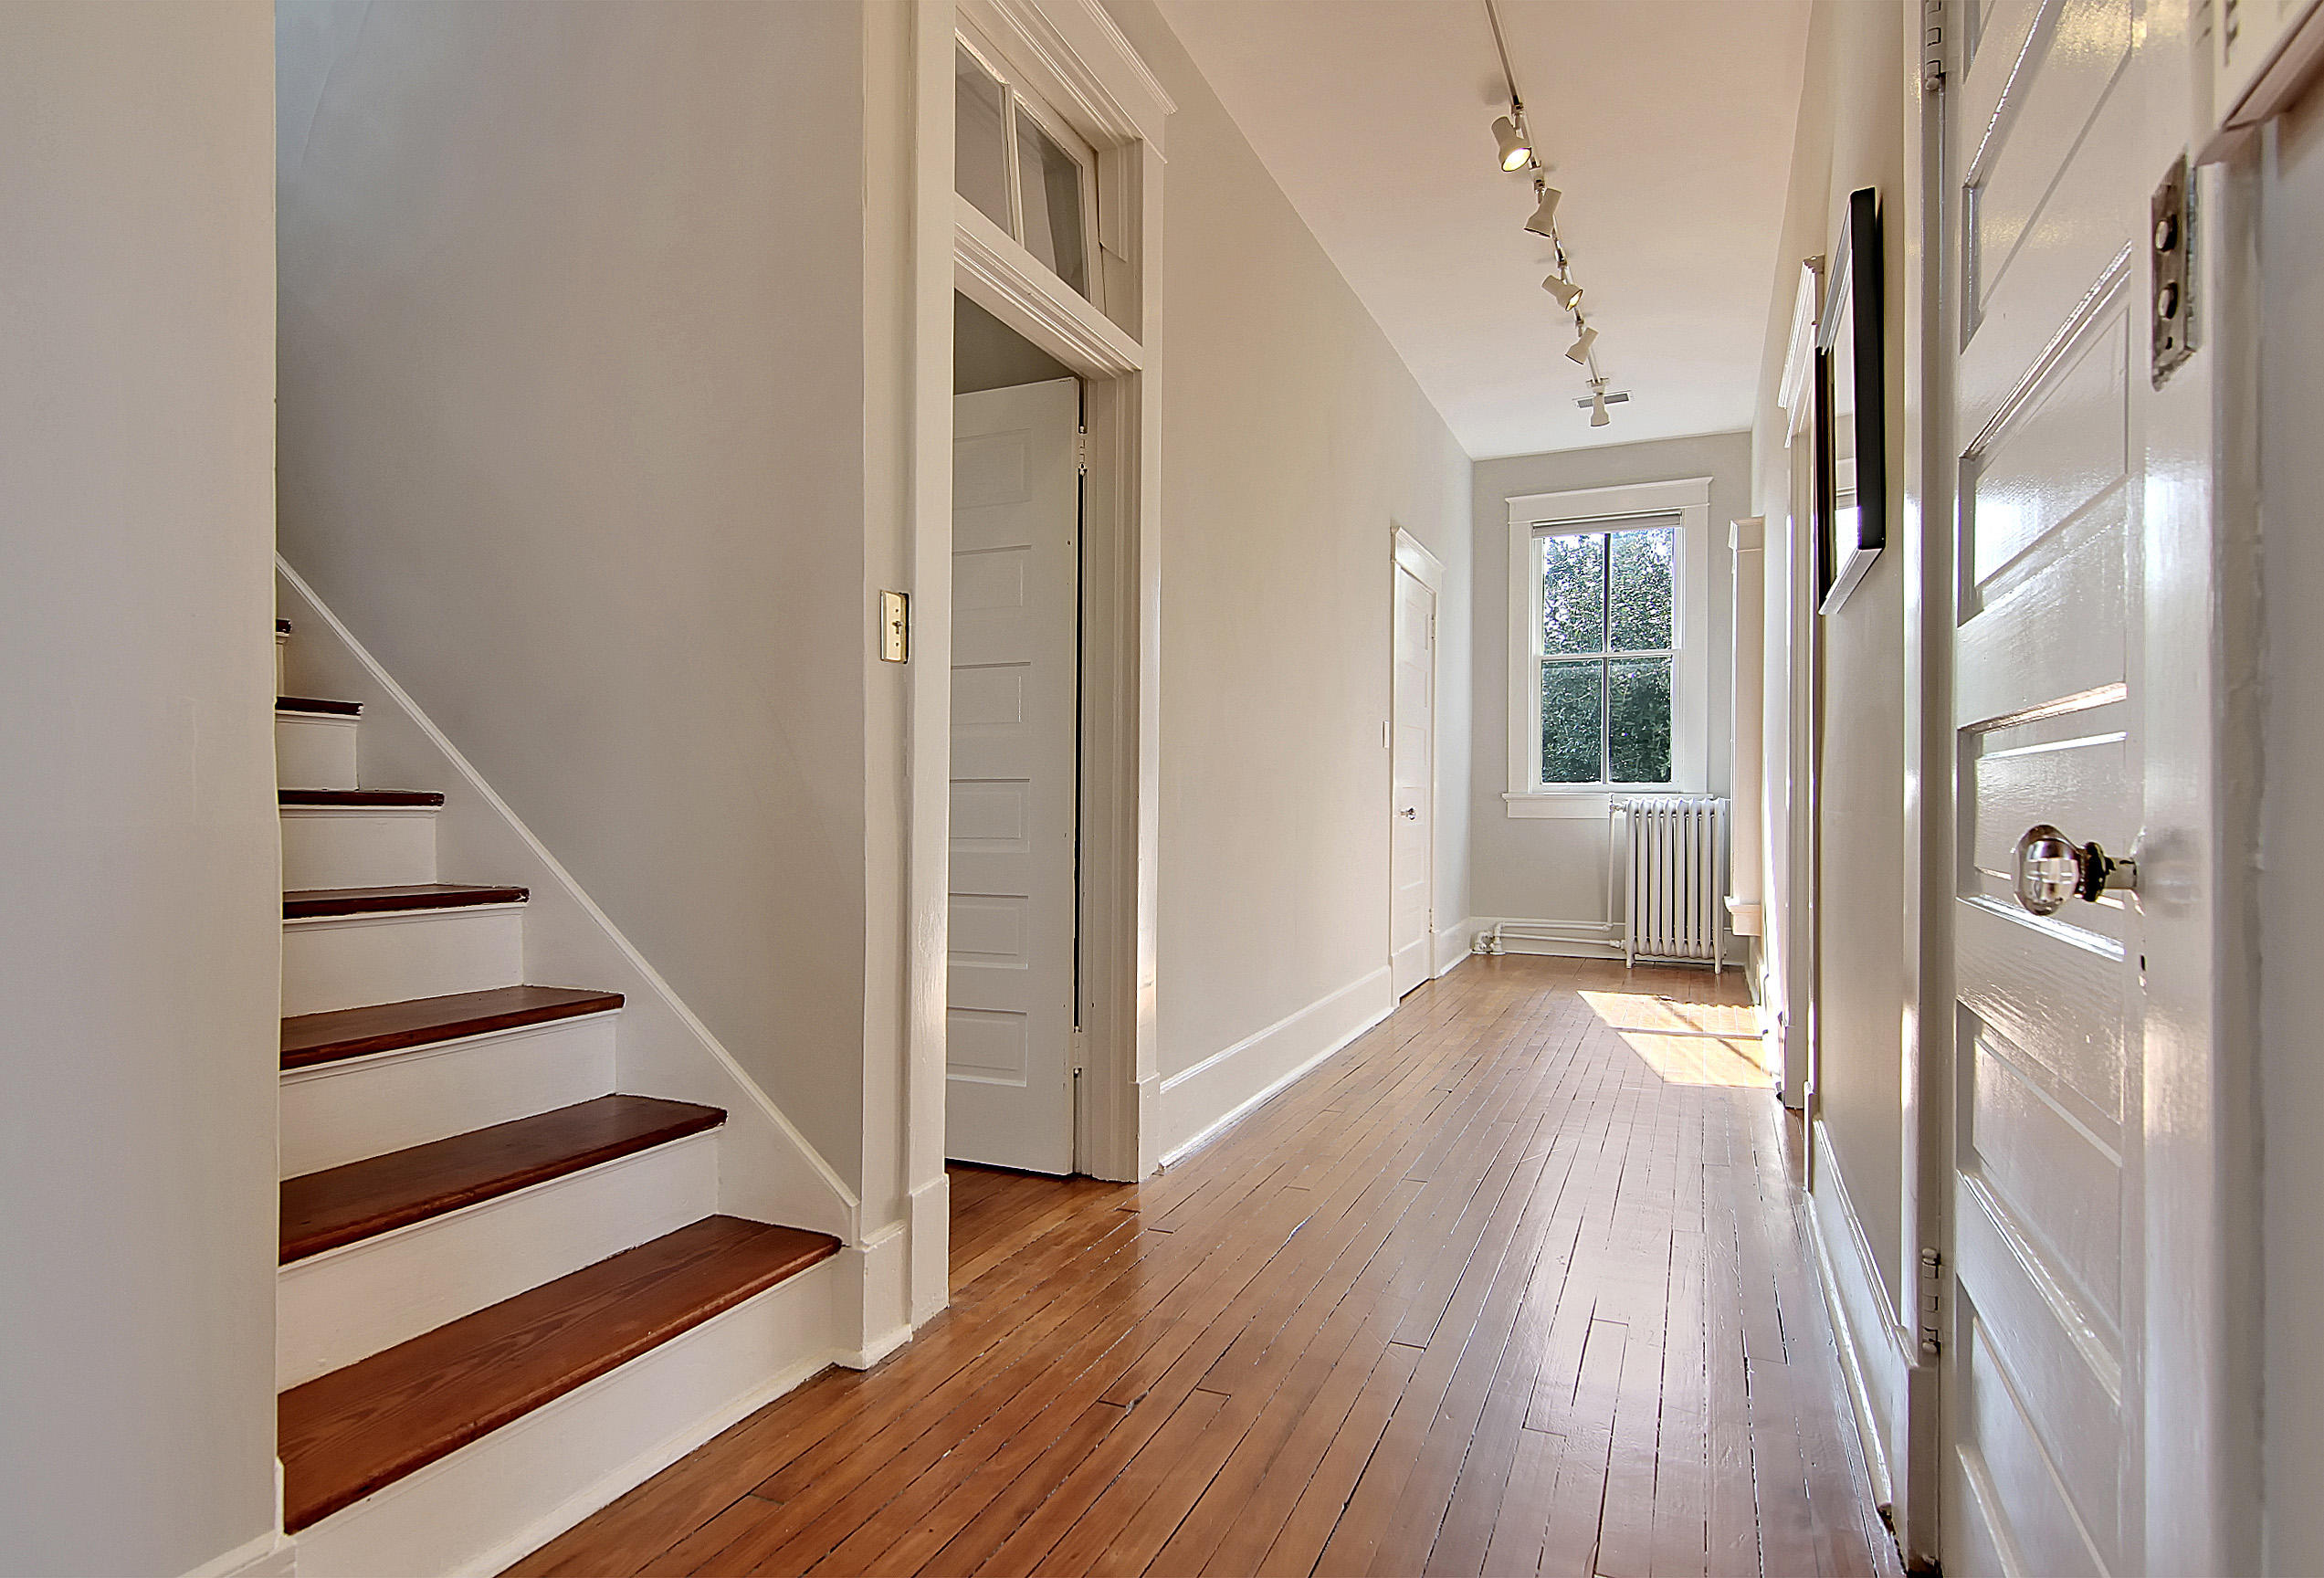 Home for sale 79 Gibbes Street, South Of Broad, Downtown Charleston, SC